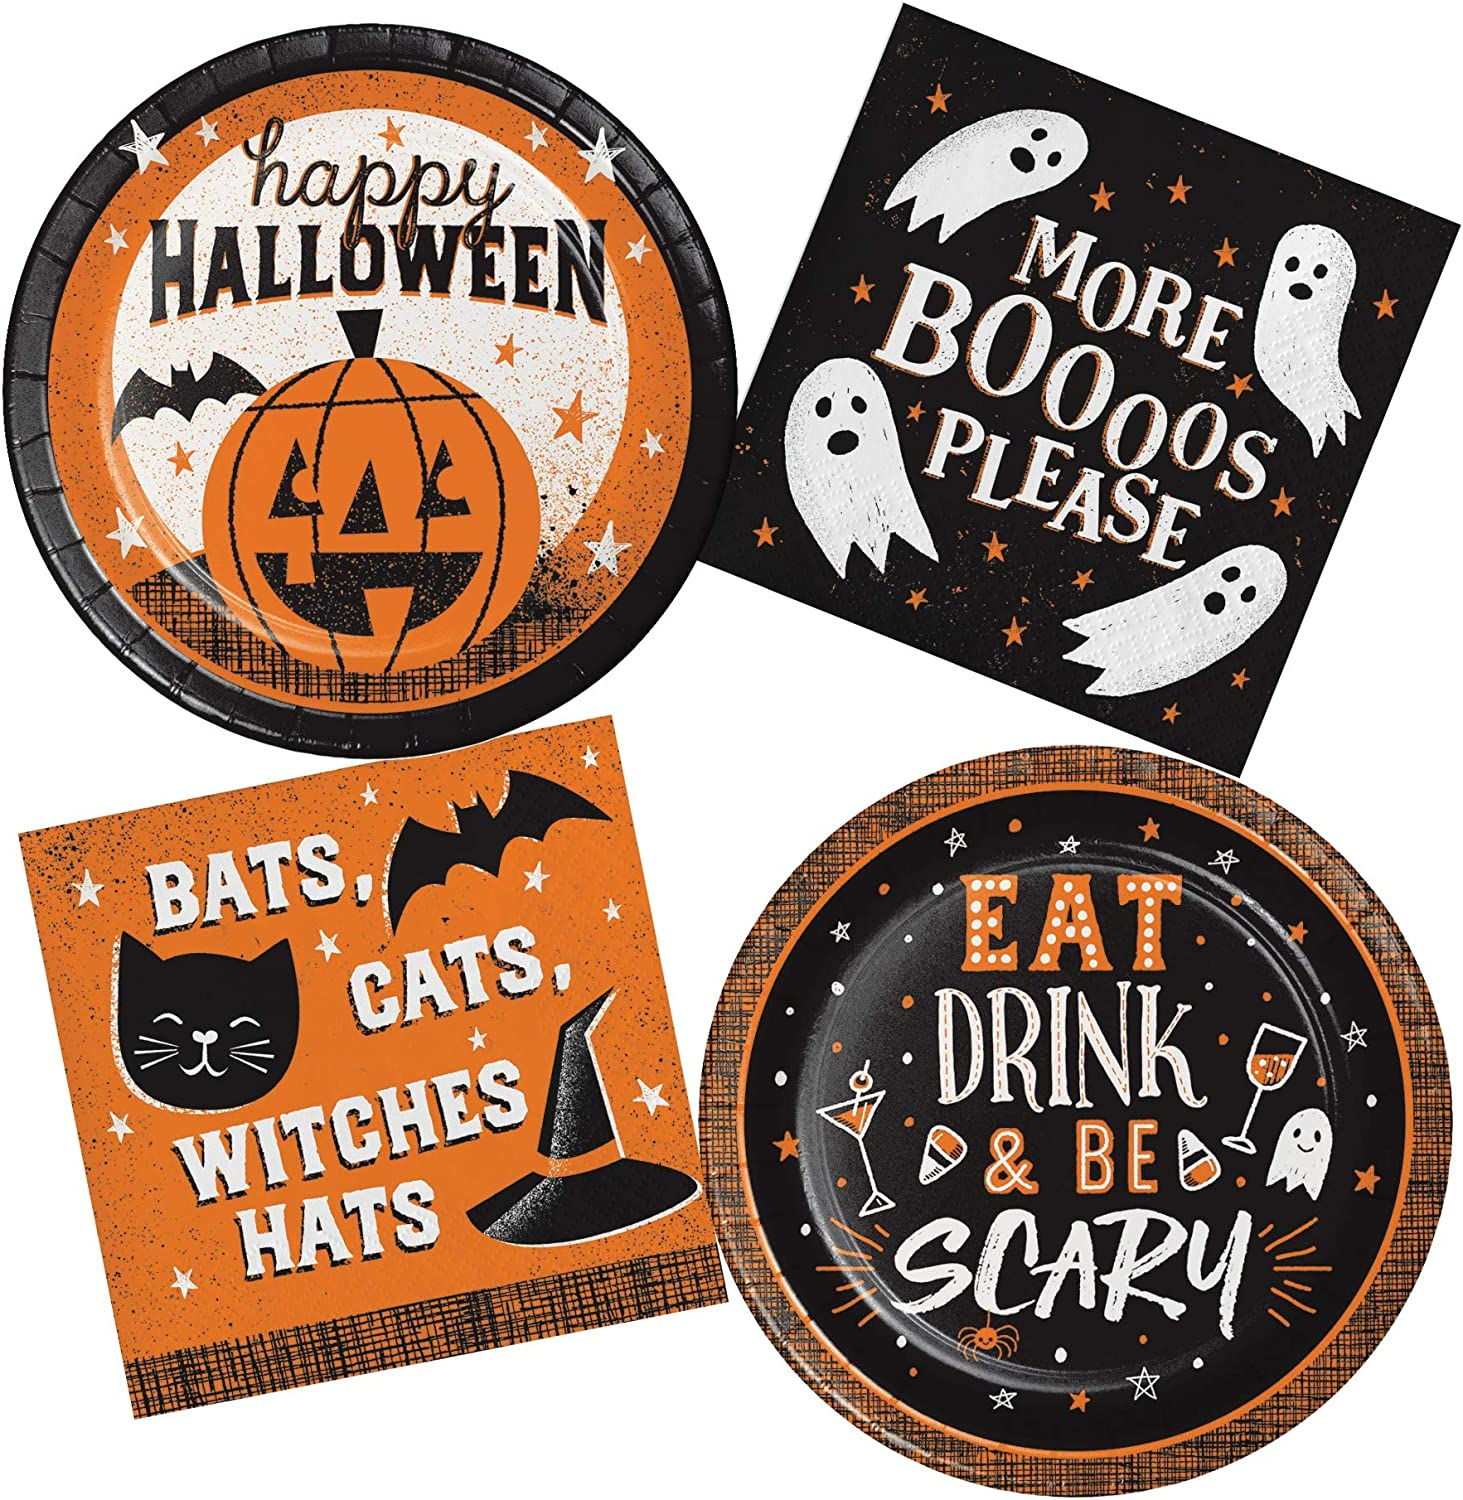 Halloween Words Plates and Napkin Sets